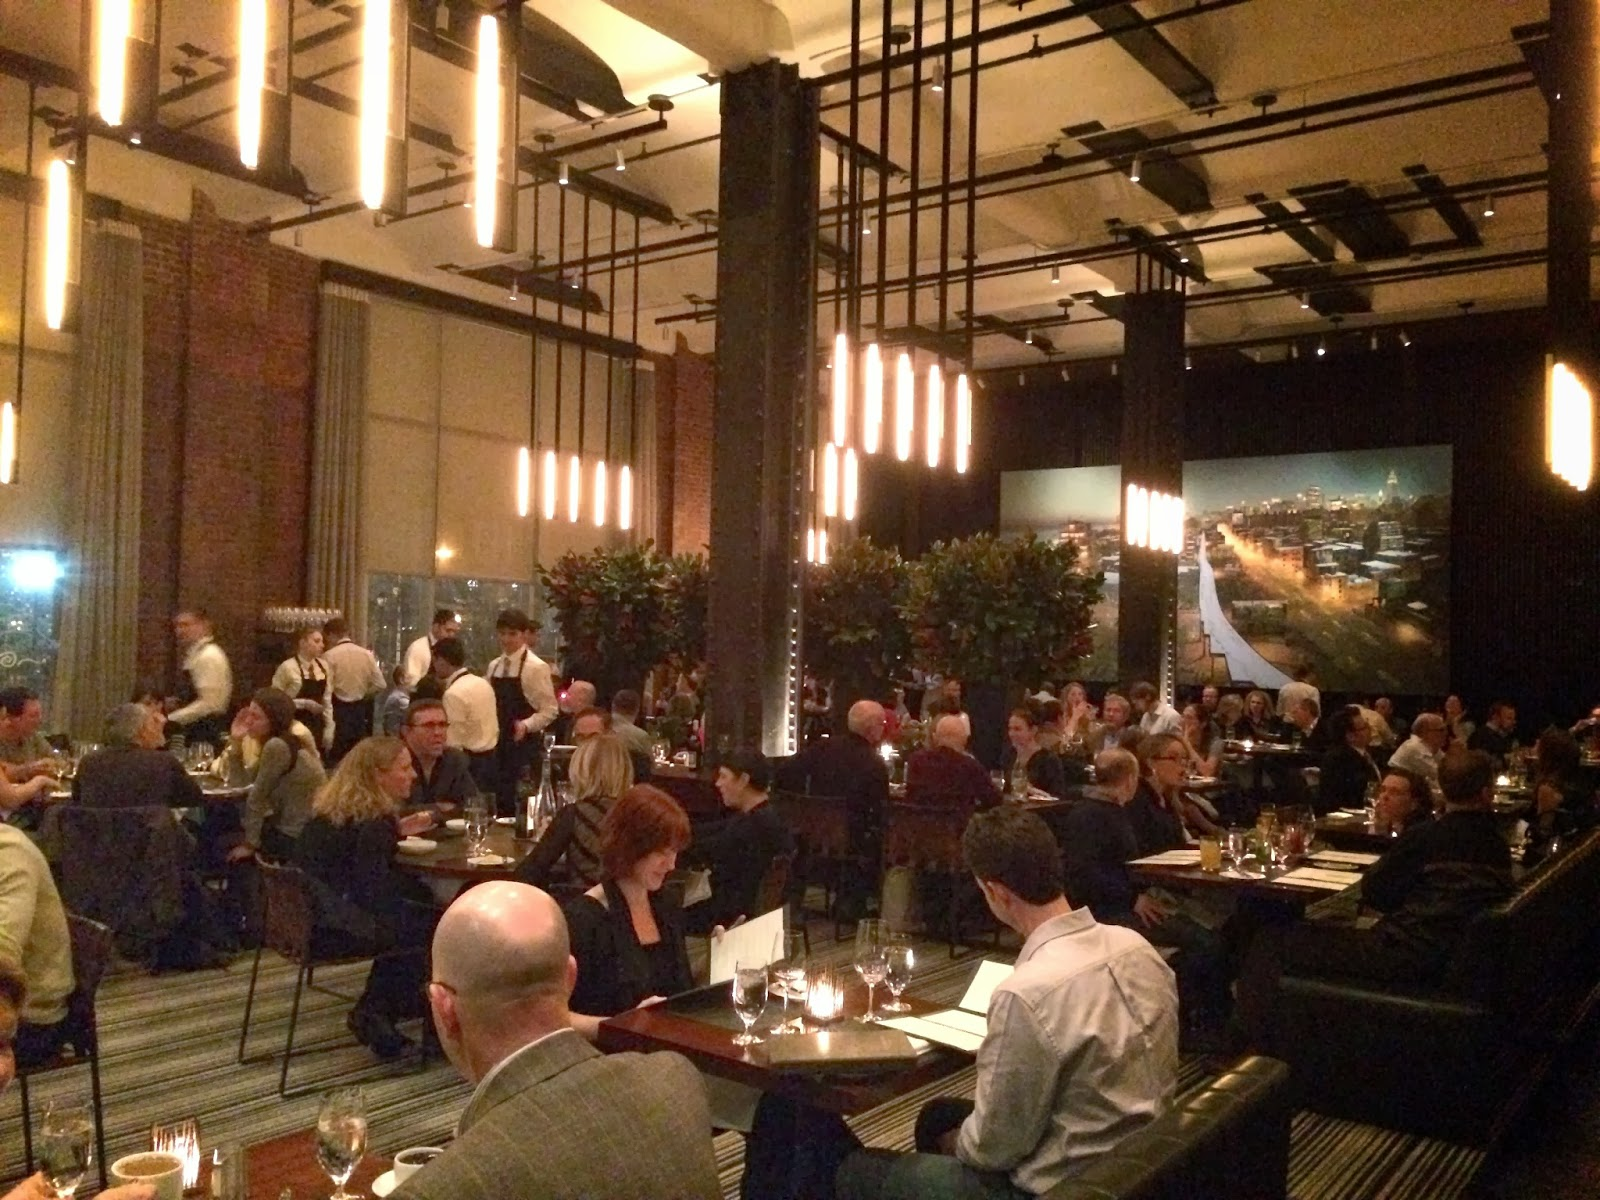 TASTE OF HAWAII: COLICCHIO AND SONS